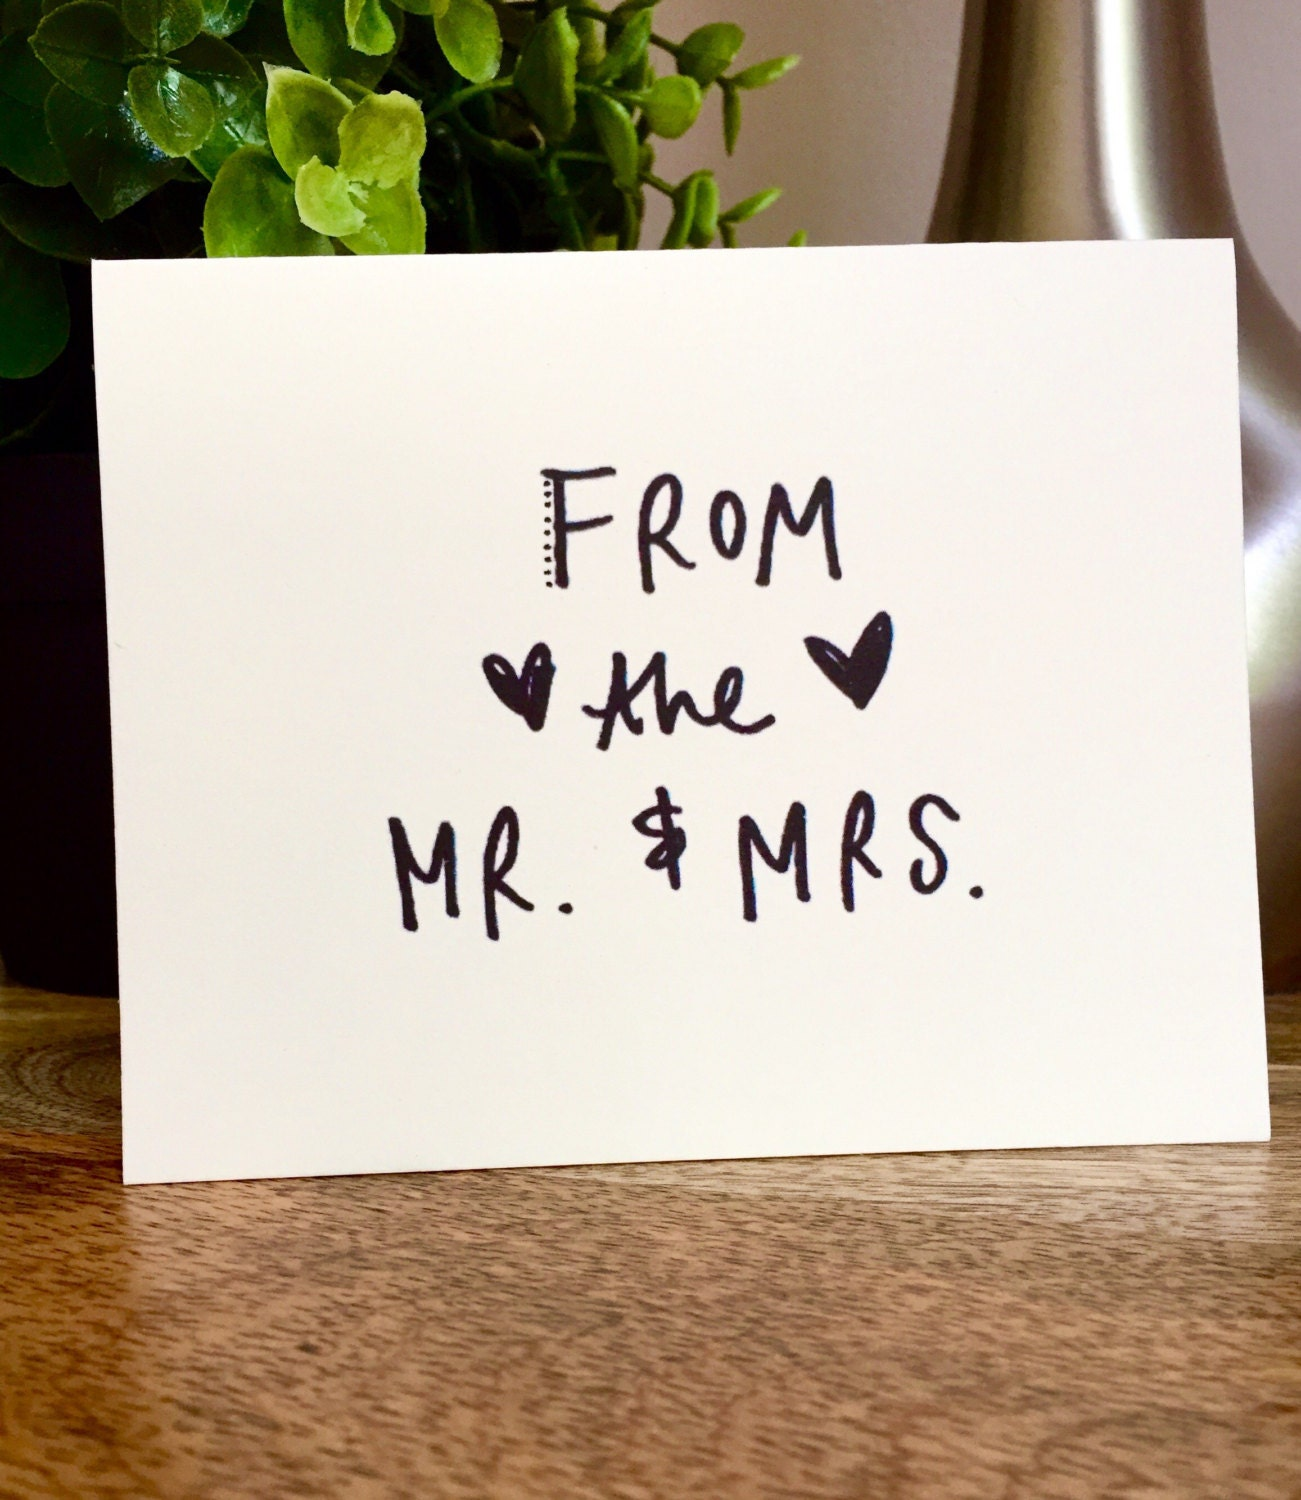 Wedding greeting card bulk mr and mrsthank you cards 10 rustic wedding greeting card bulk mr and mrsthank you cards 10 rustic thank you card set wedding thank you cards thank from bride and groom kristyandbryce Image collections